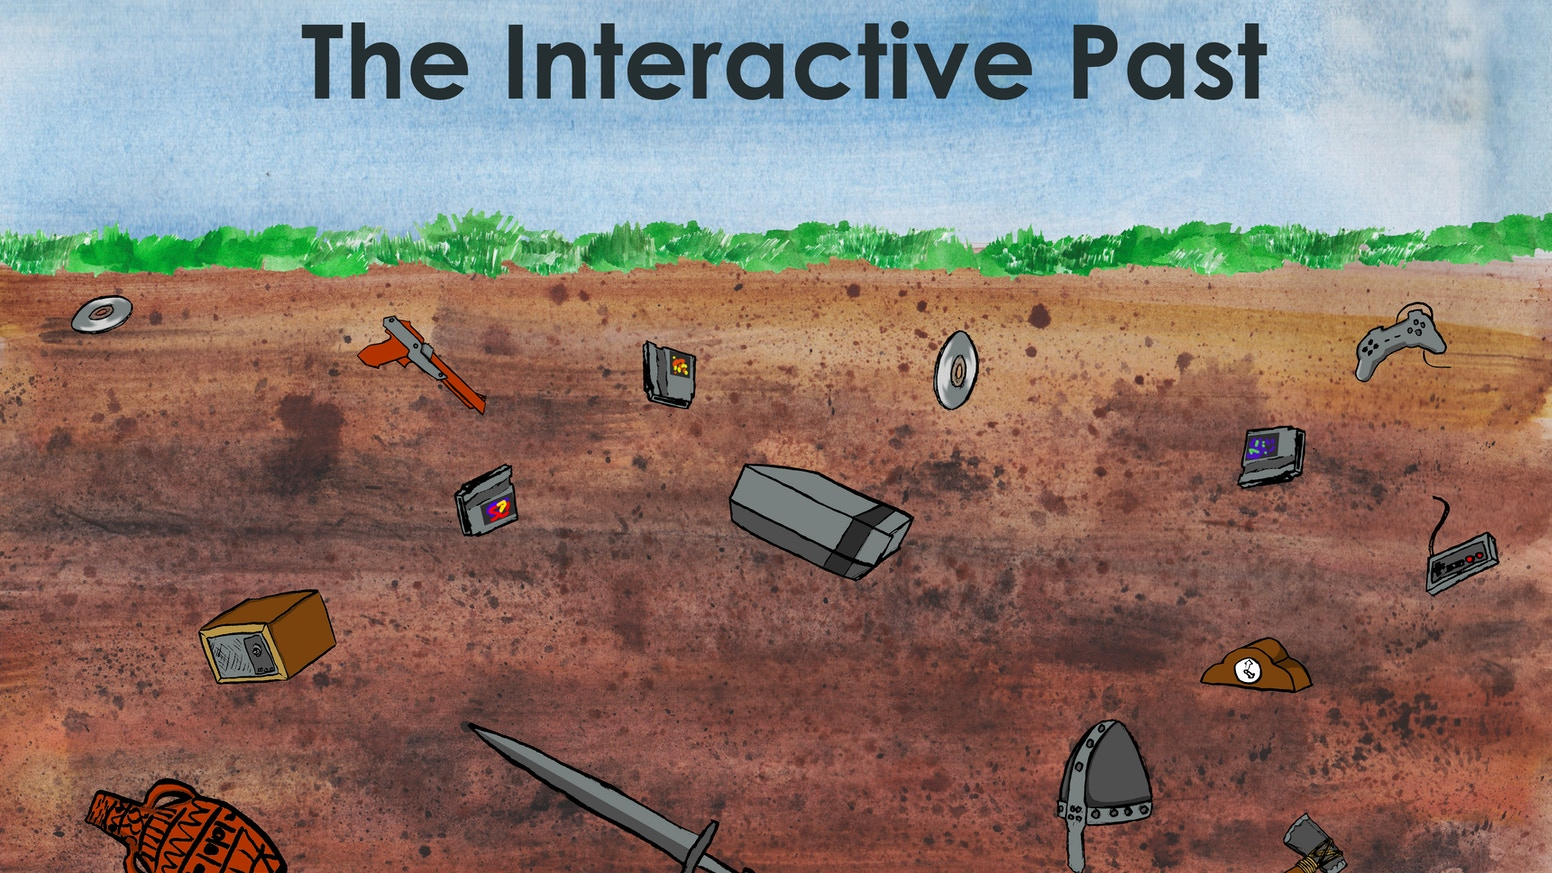 This Open-Access book contains a dozen chapters about video games, archaeology, history and heritage by scholars and developers